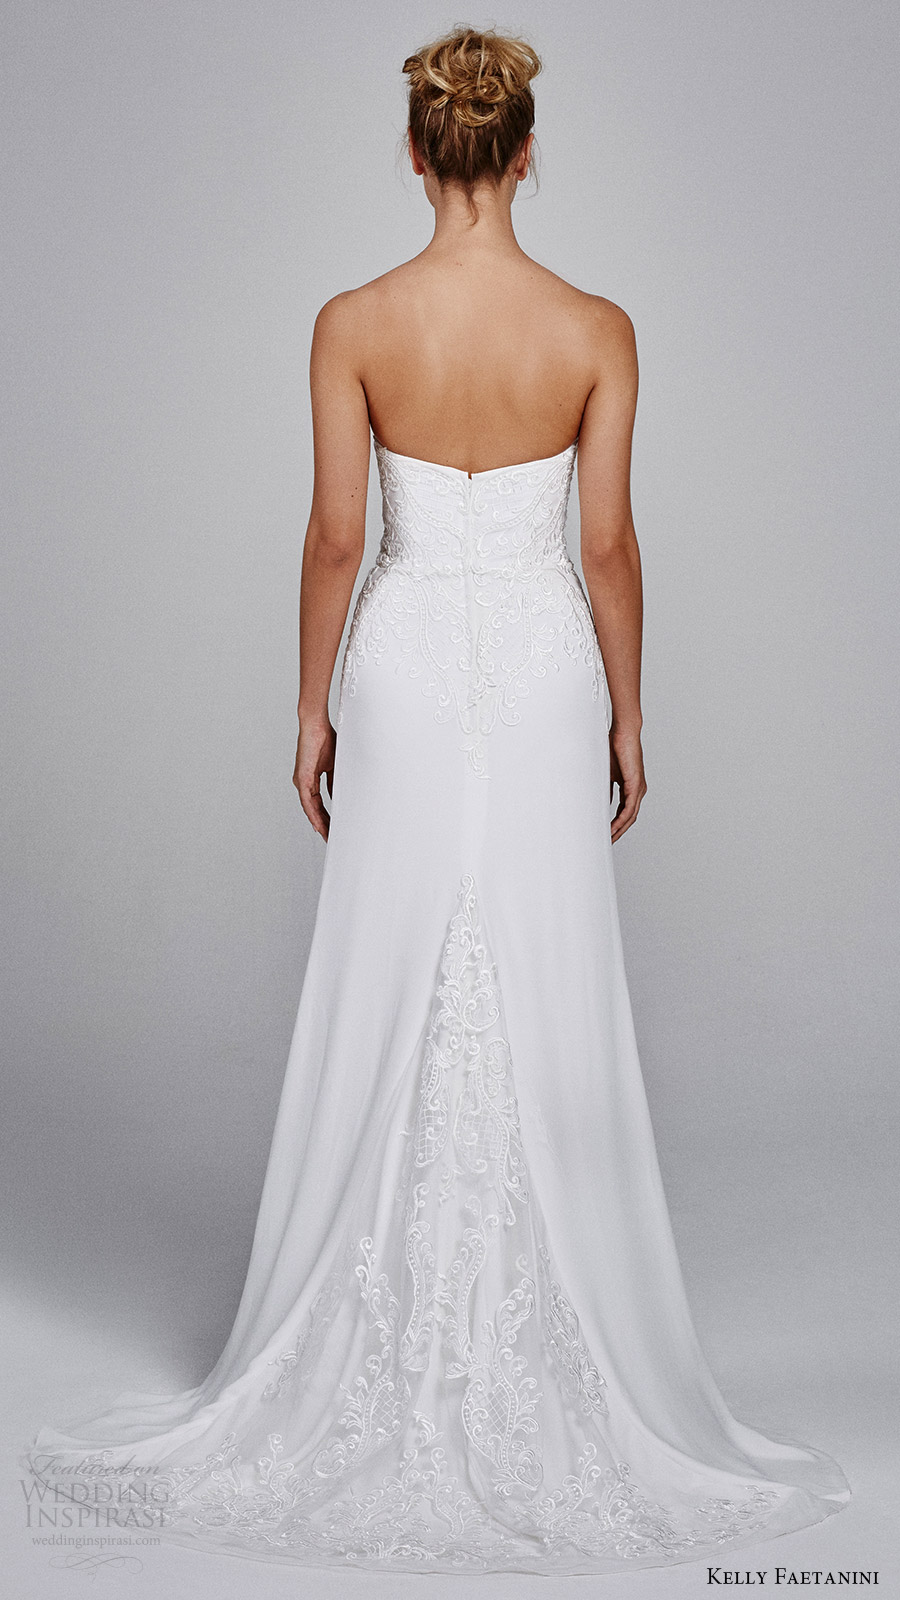 kelly faetanini bridal fall 2017 strapless sweetheart embroidery soft aline wedding dress (clover) bv train